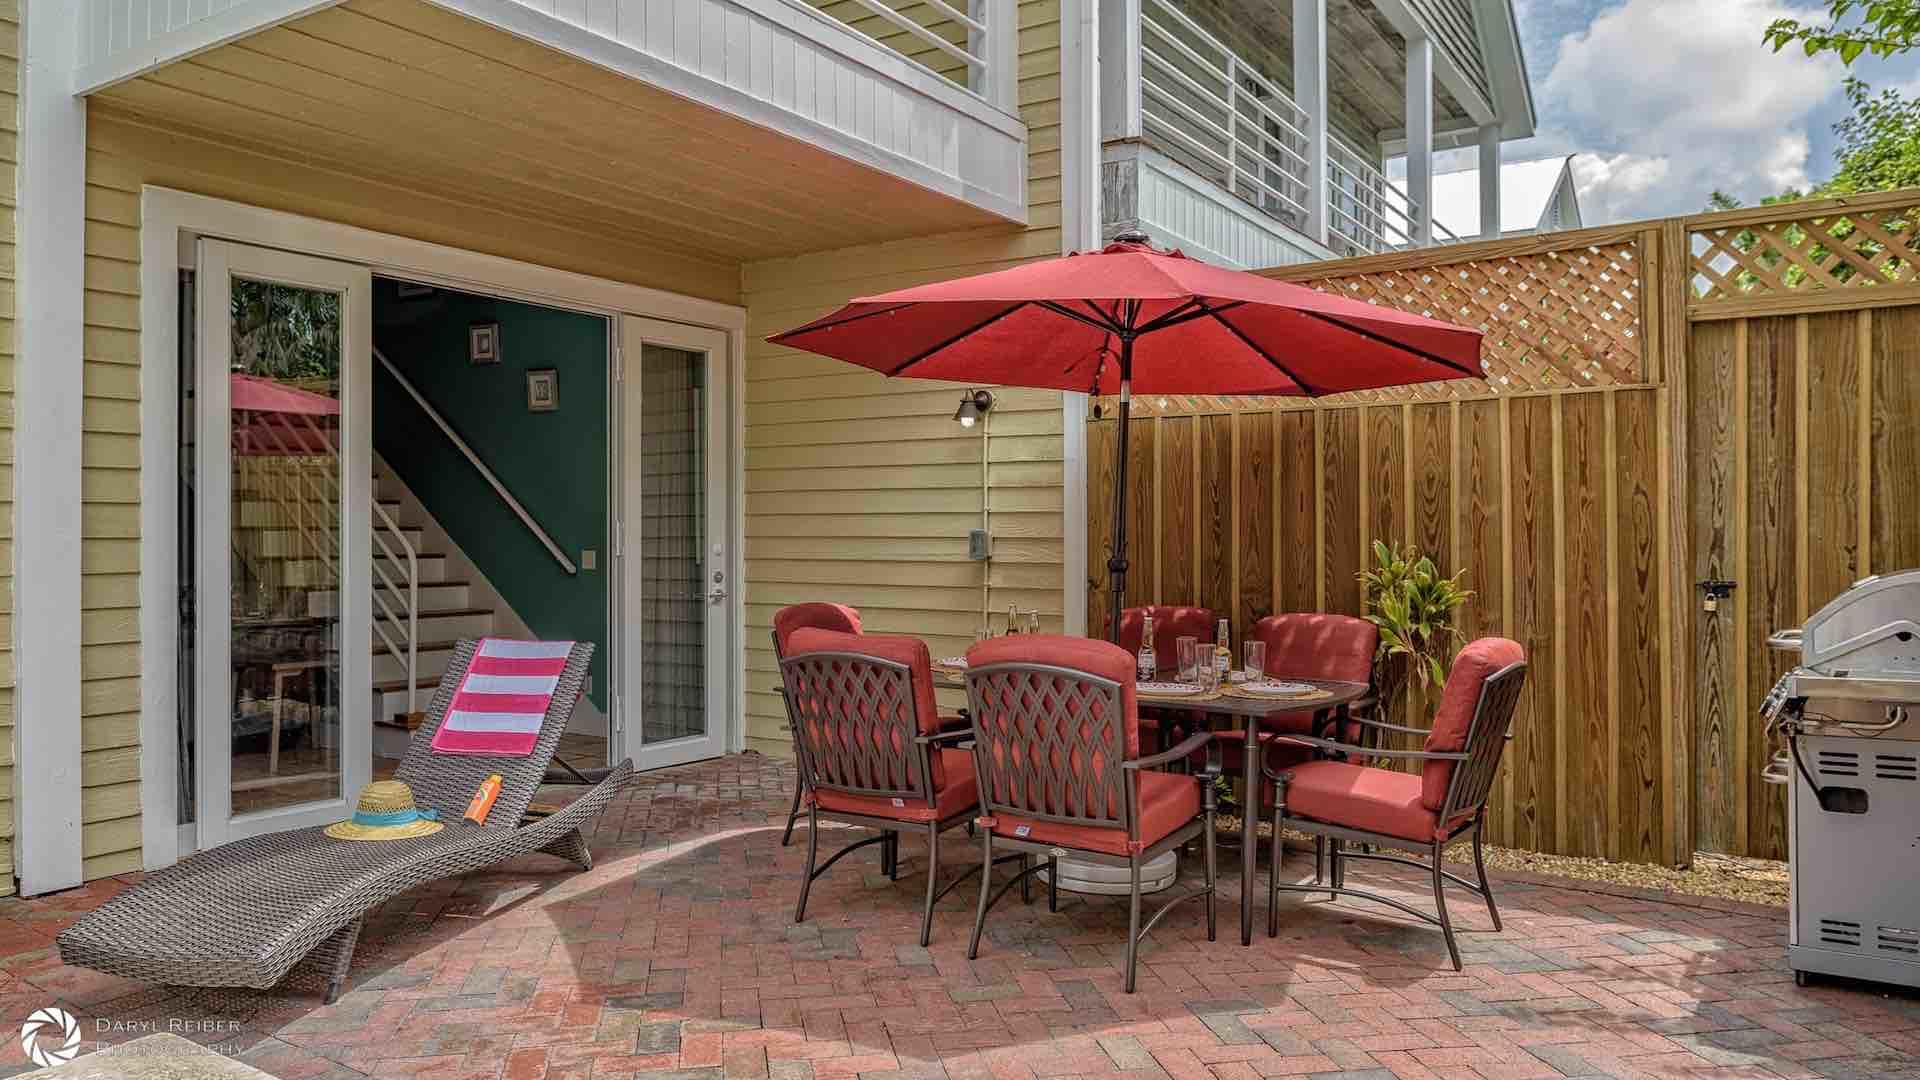 The outdoor dining set for six and the grill are a recipe for a poolside BBQ...